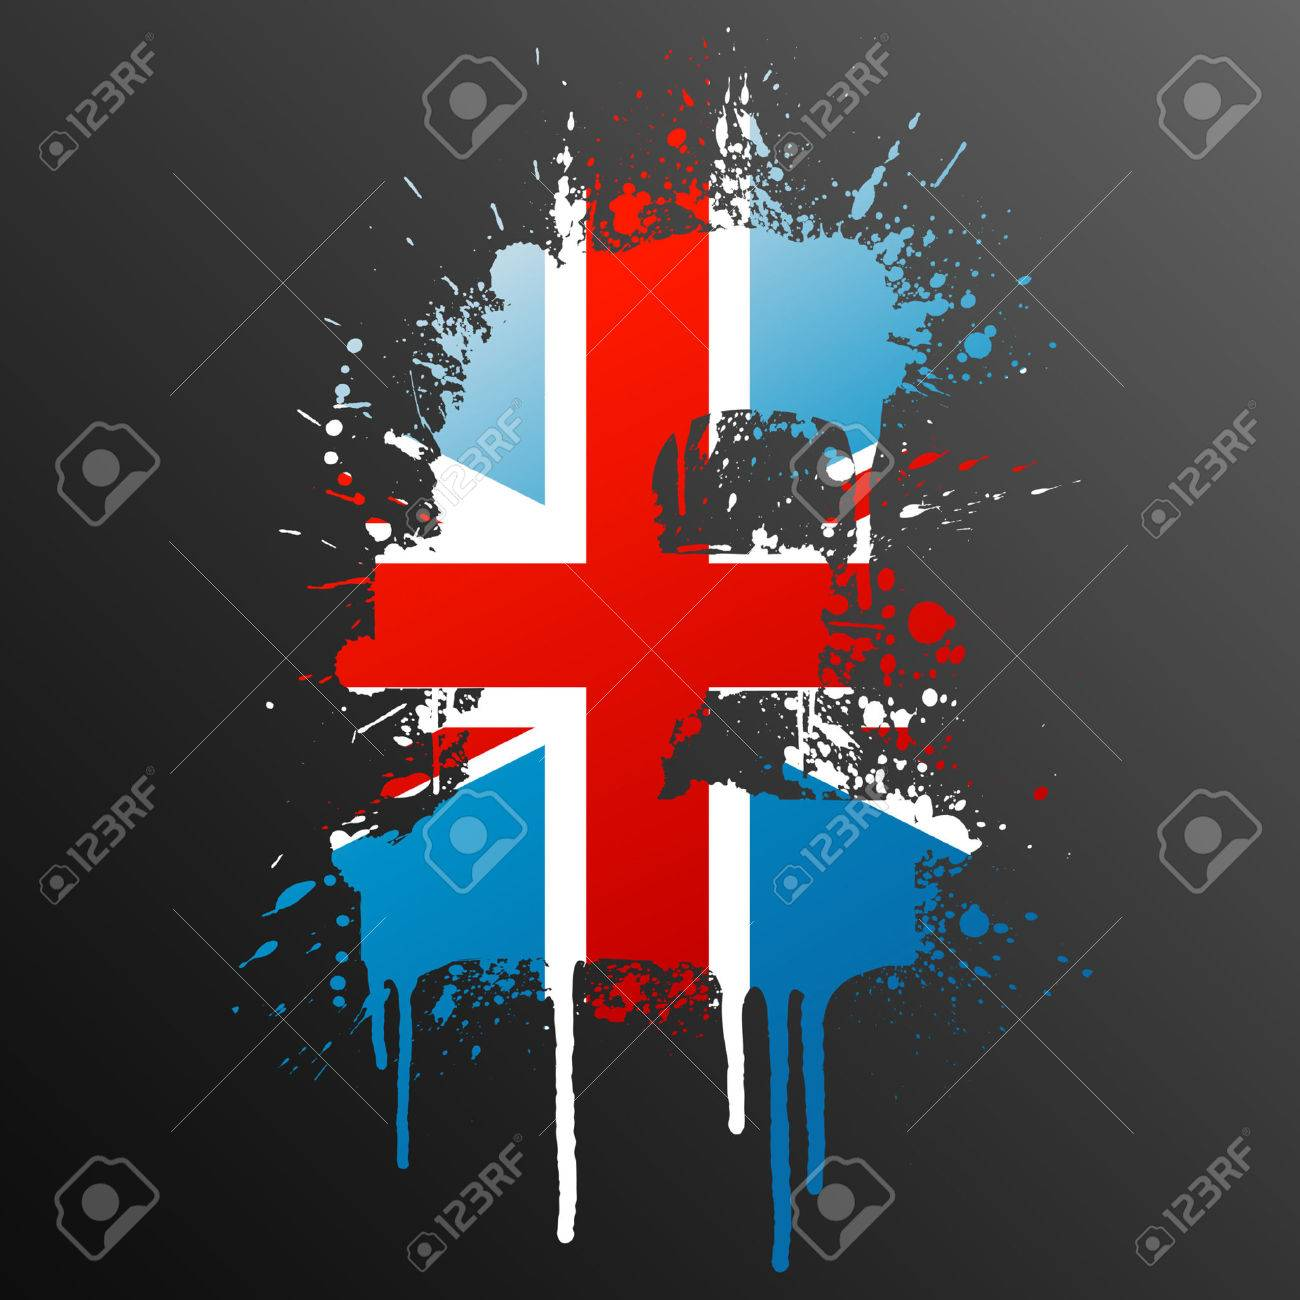 Vector illustration of a conceptual ink splatter in the shape of the United Kingdom Pound currency symbol. - 3373267